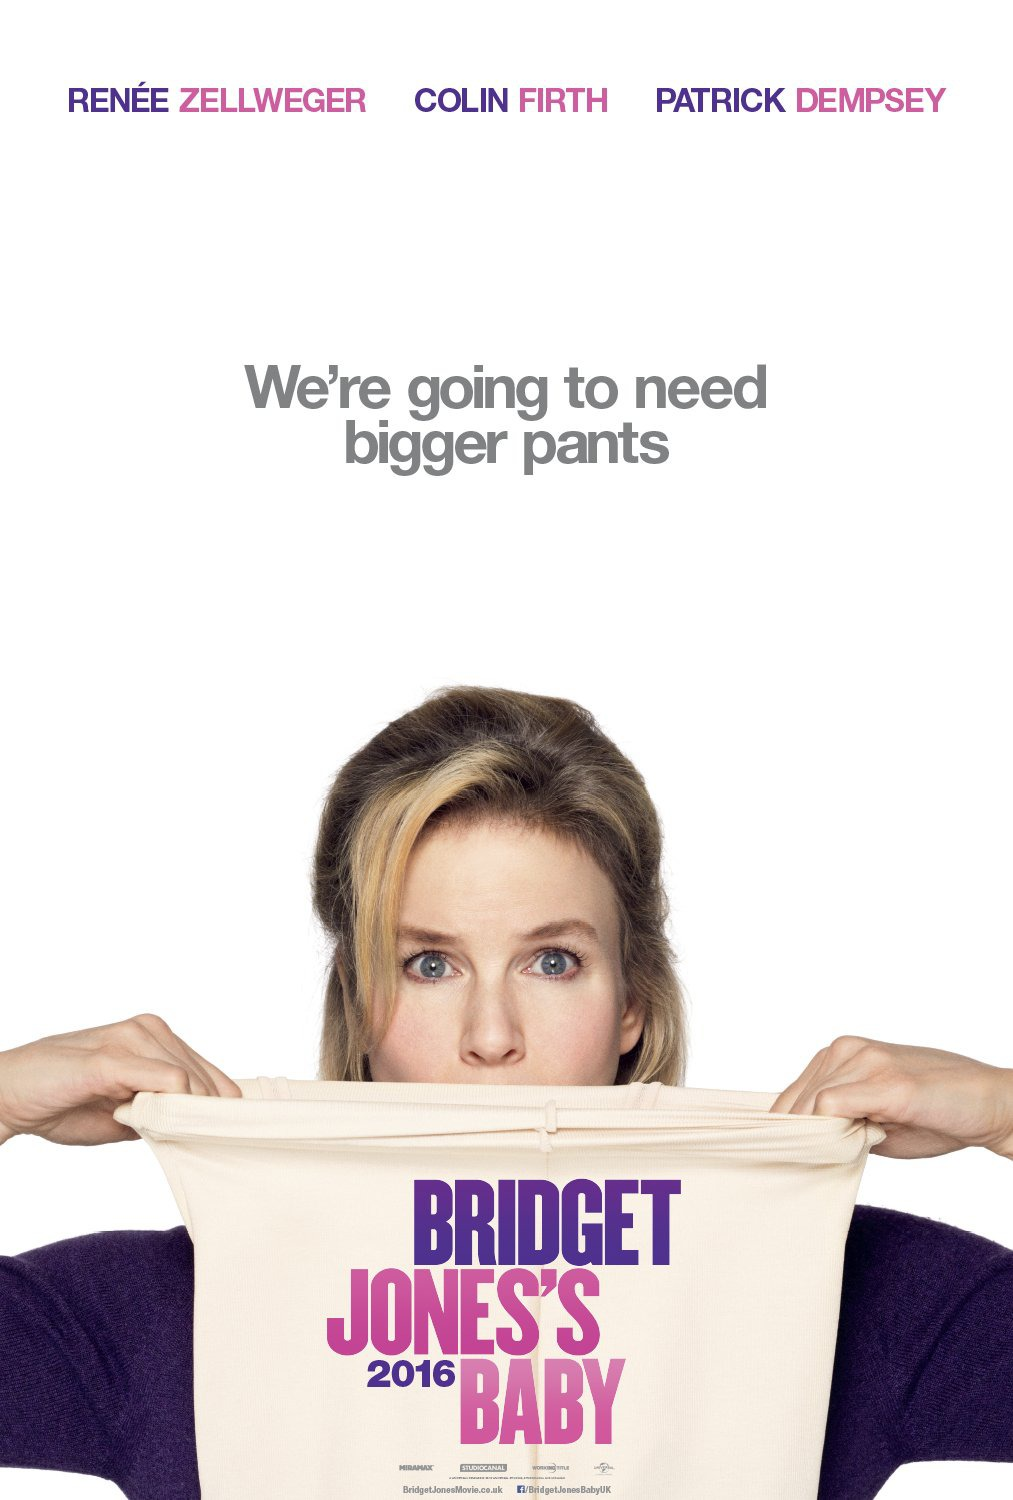 Bridget Jones' Baby trailer.